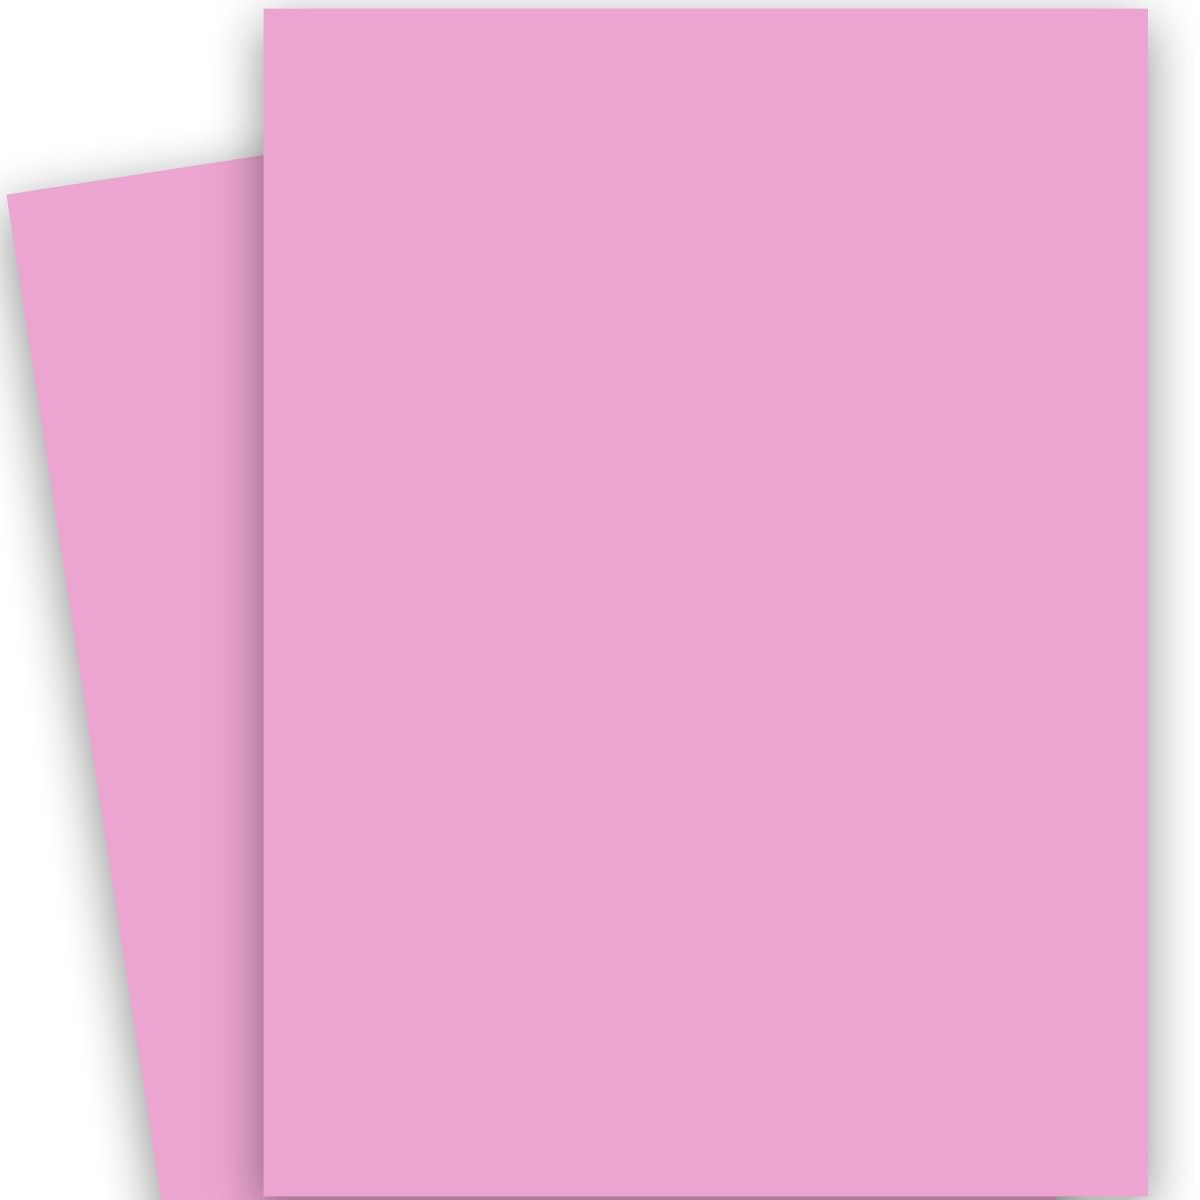 Poptone Cotton Candy 26x40 65c 175gsm Lightweight Card Stock Paper In 2021 Paper Pop French Paper Paper